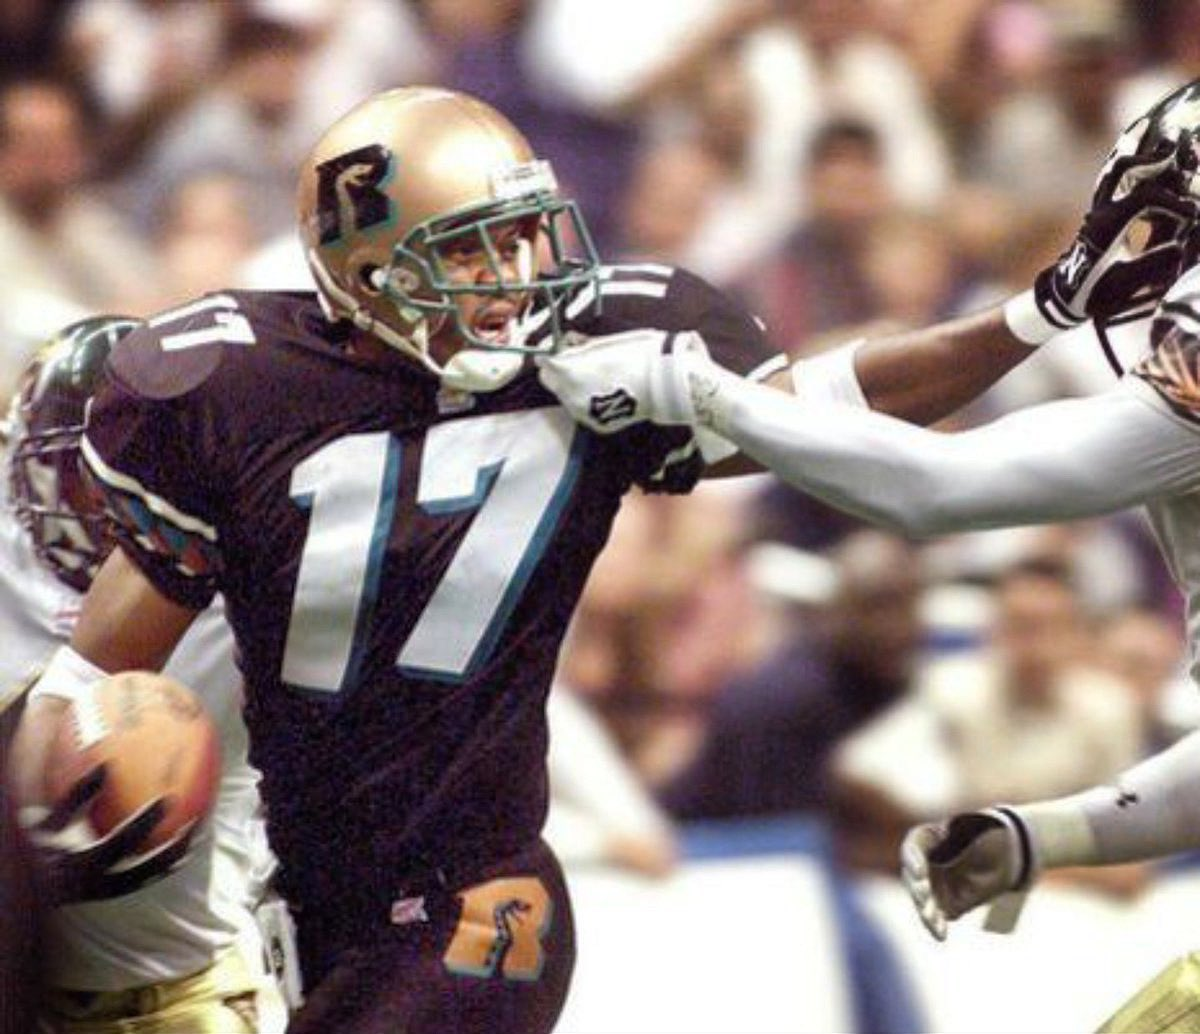 #TBT to 2 time AFL Ironman of the year 🏆 and AFL Hall of Famer: Wide Receiver Randy Gatewood #StrikeAsOne 🐍 https://t.co/uREPE8t7pW